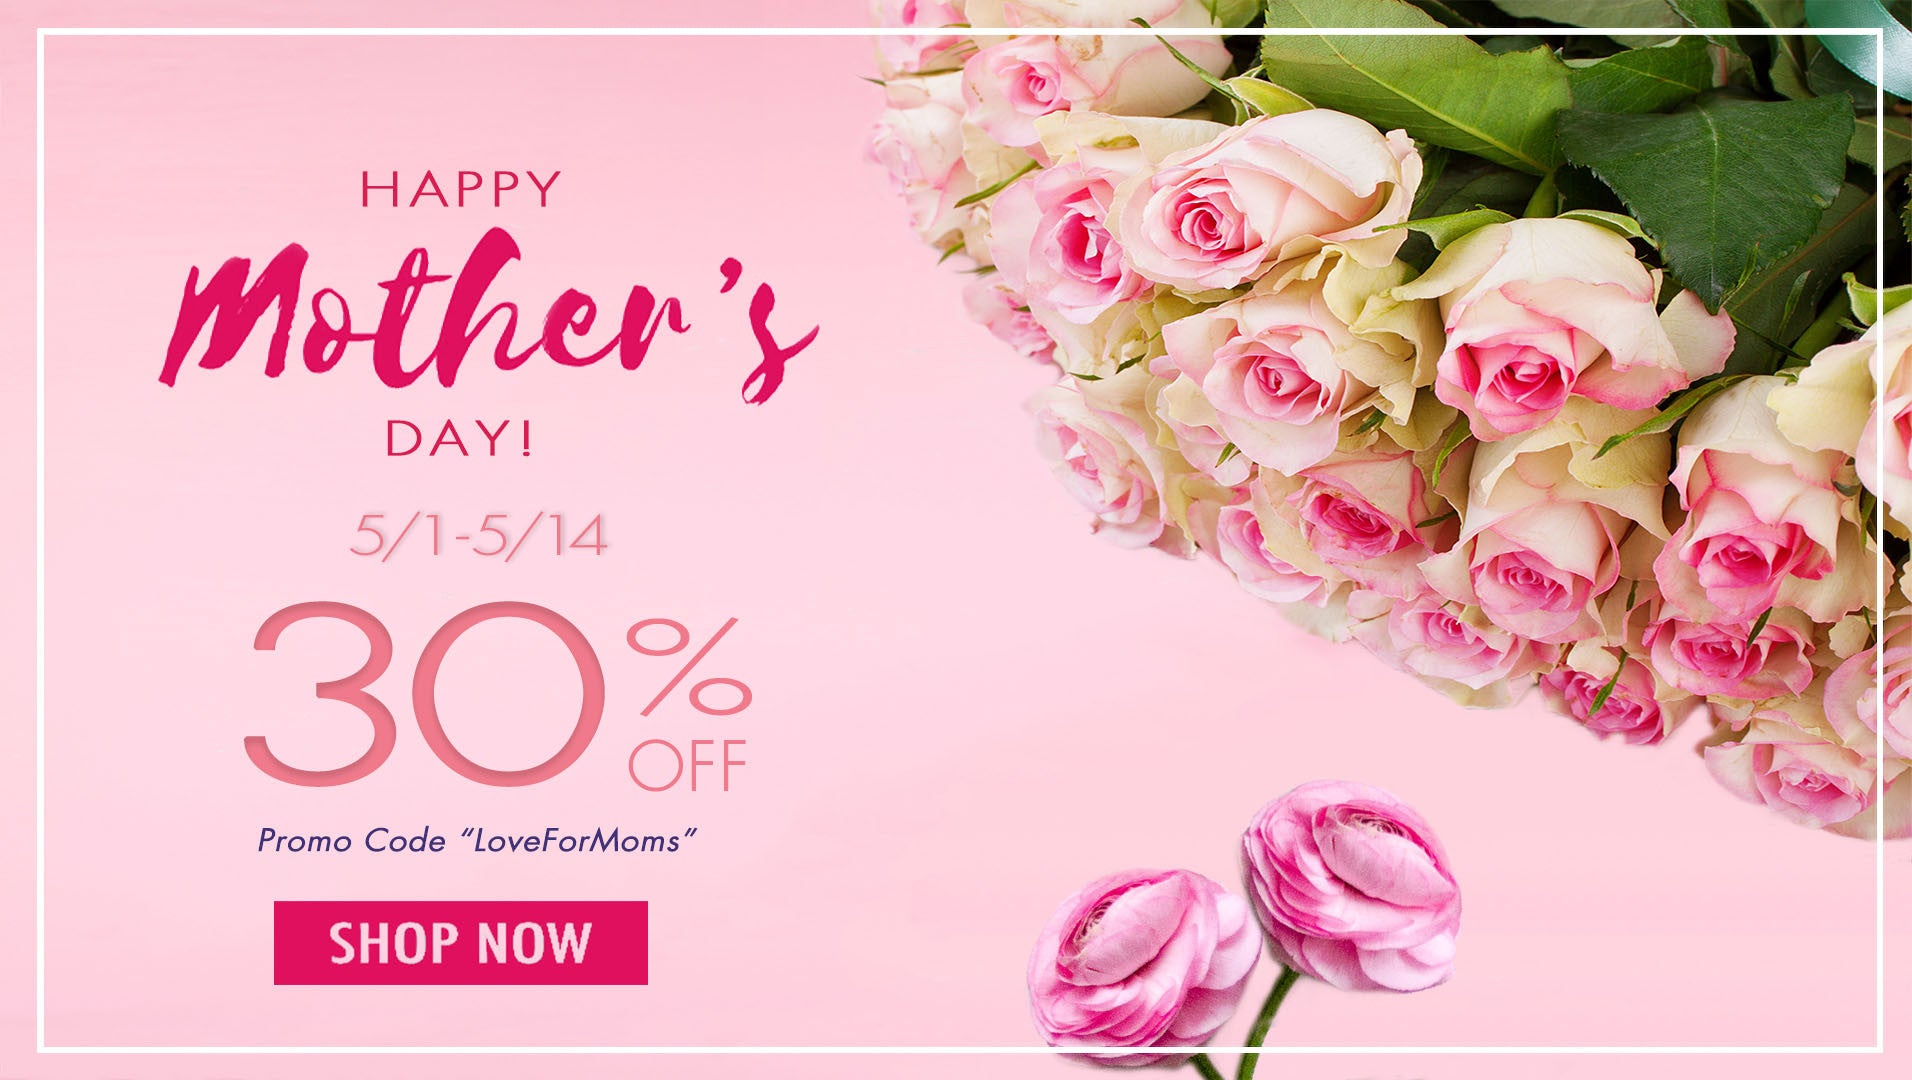 BaliniSports Mother's Day Sale 30% OFF